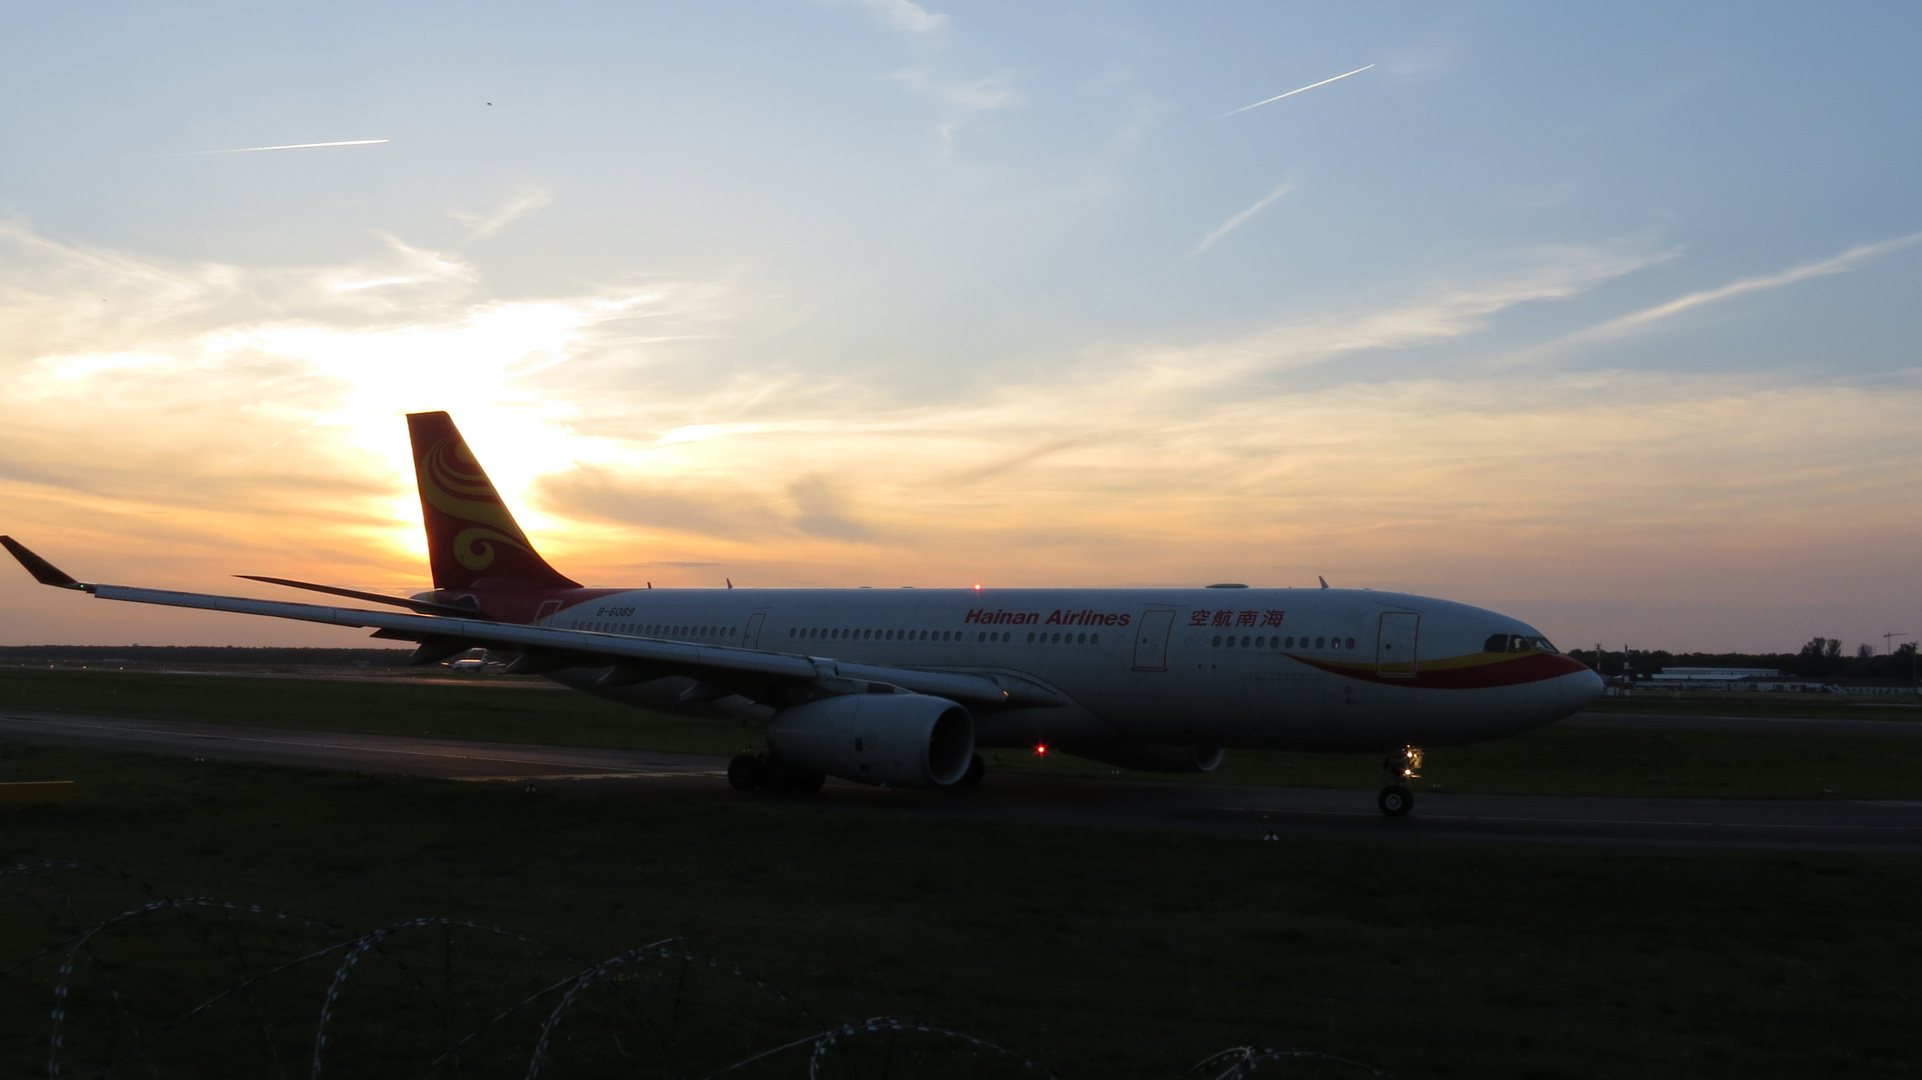 Hainan Airlines A330-200 am Abend [Berlin-Tegel]